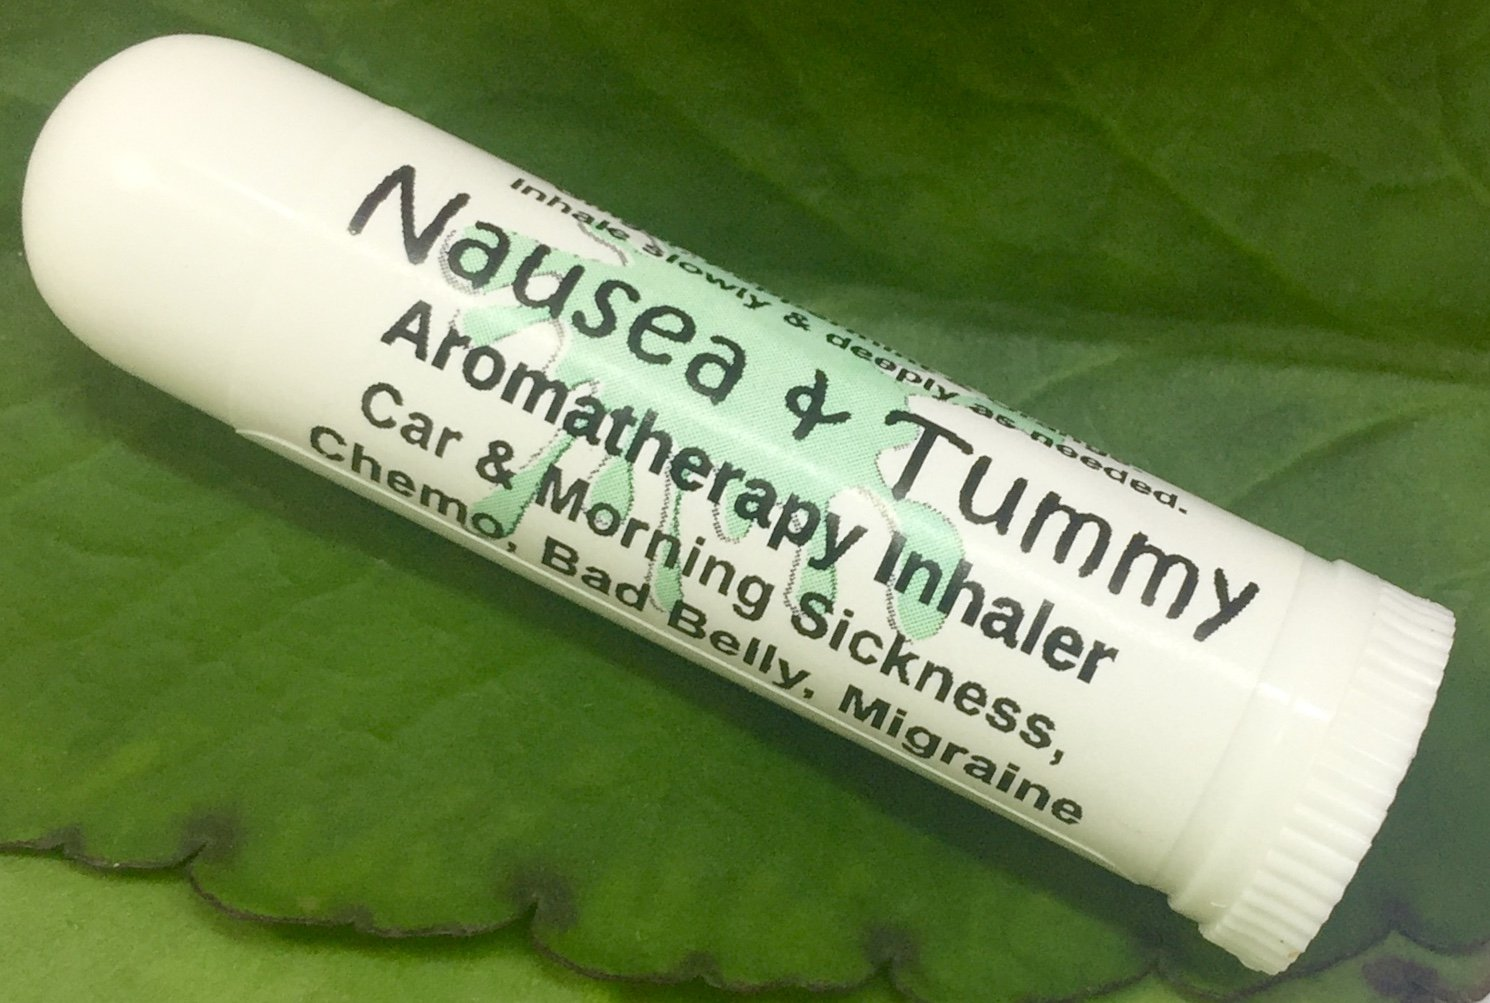 NAUSEA & TUMMY Aromatherapy Inhaler! Relief for Car & Morning Sickness, Chemo Queasiness, Bad Belly, Migraine Quease, Medication illness! Pocket Purse Stick, Handy Portable. Inhale Deeply for fast relief. 100% Natural Botanicals. Made fresh in USA! Drug Free Alternative